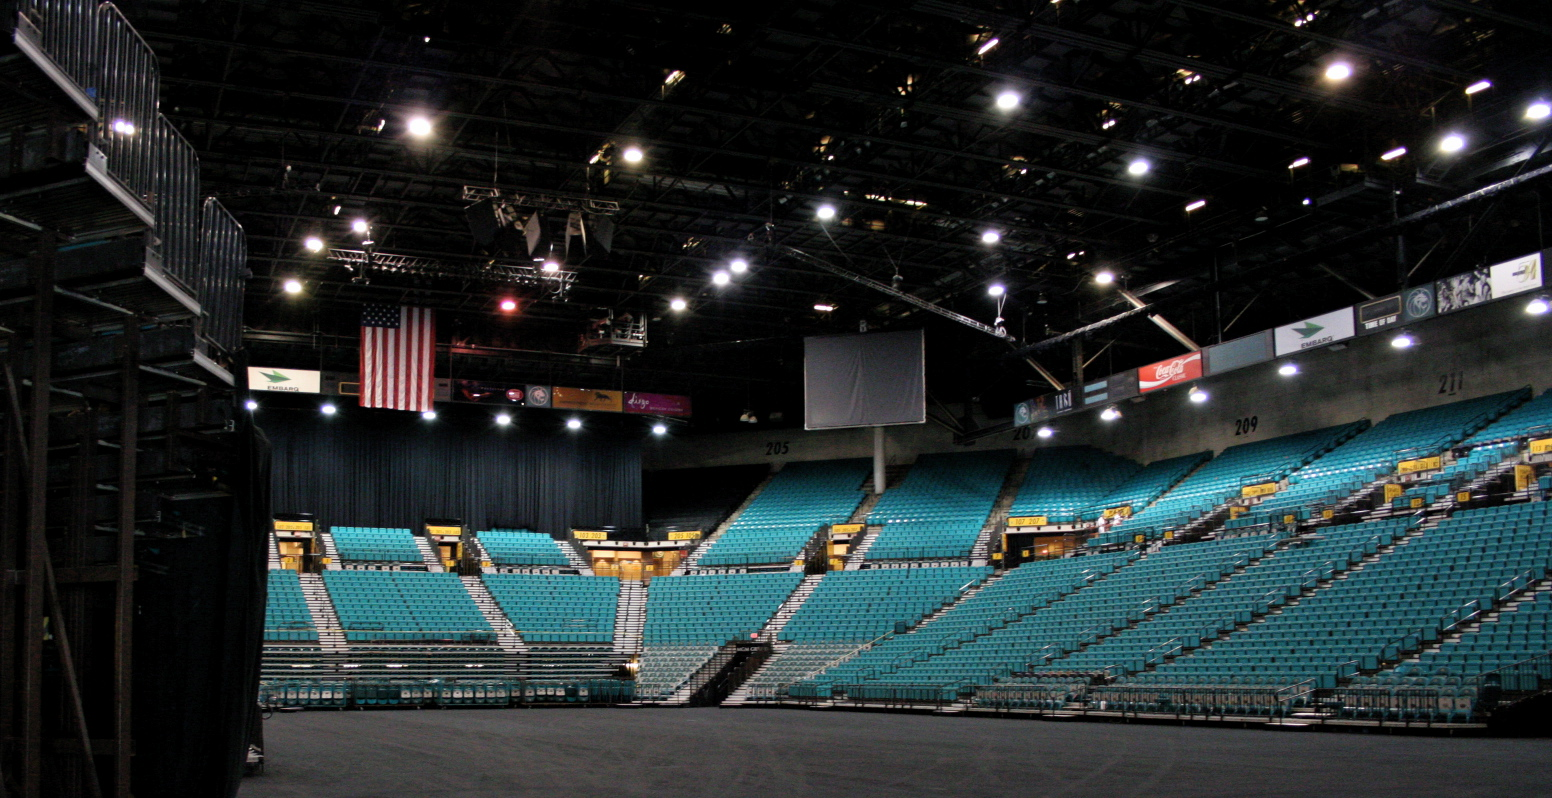 mgm grand garden arena event venue